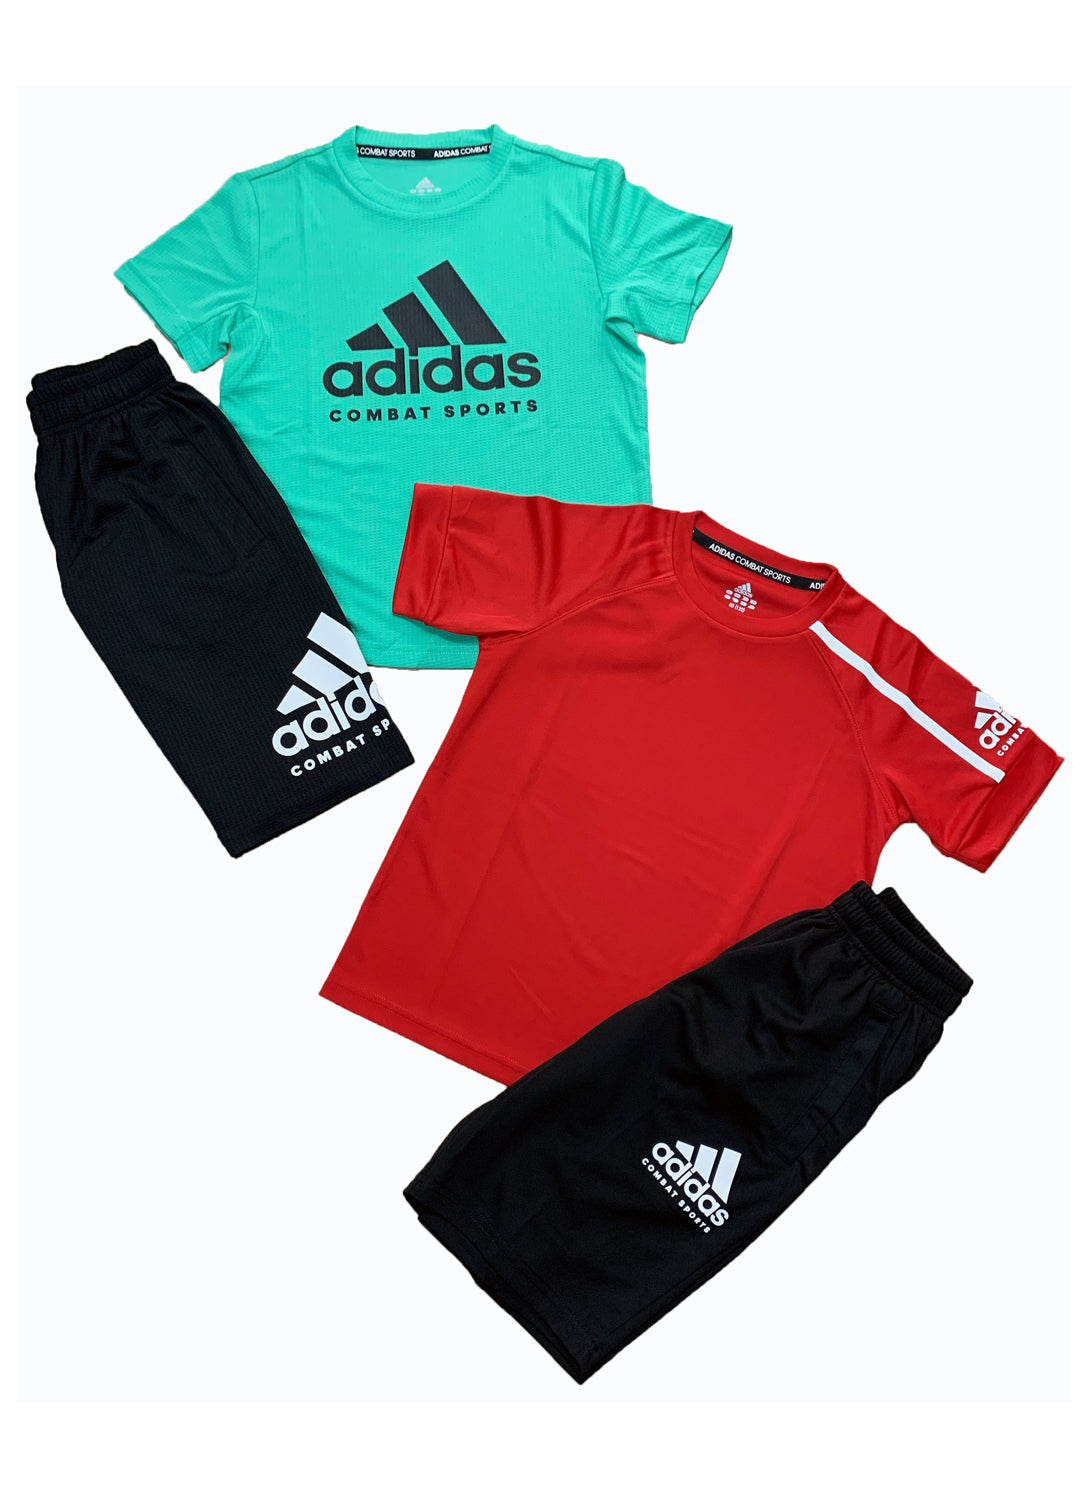 adidas Youth Summer Teamwear - 4pc Set